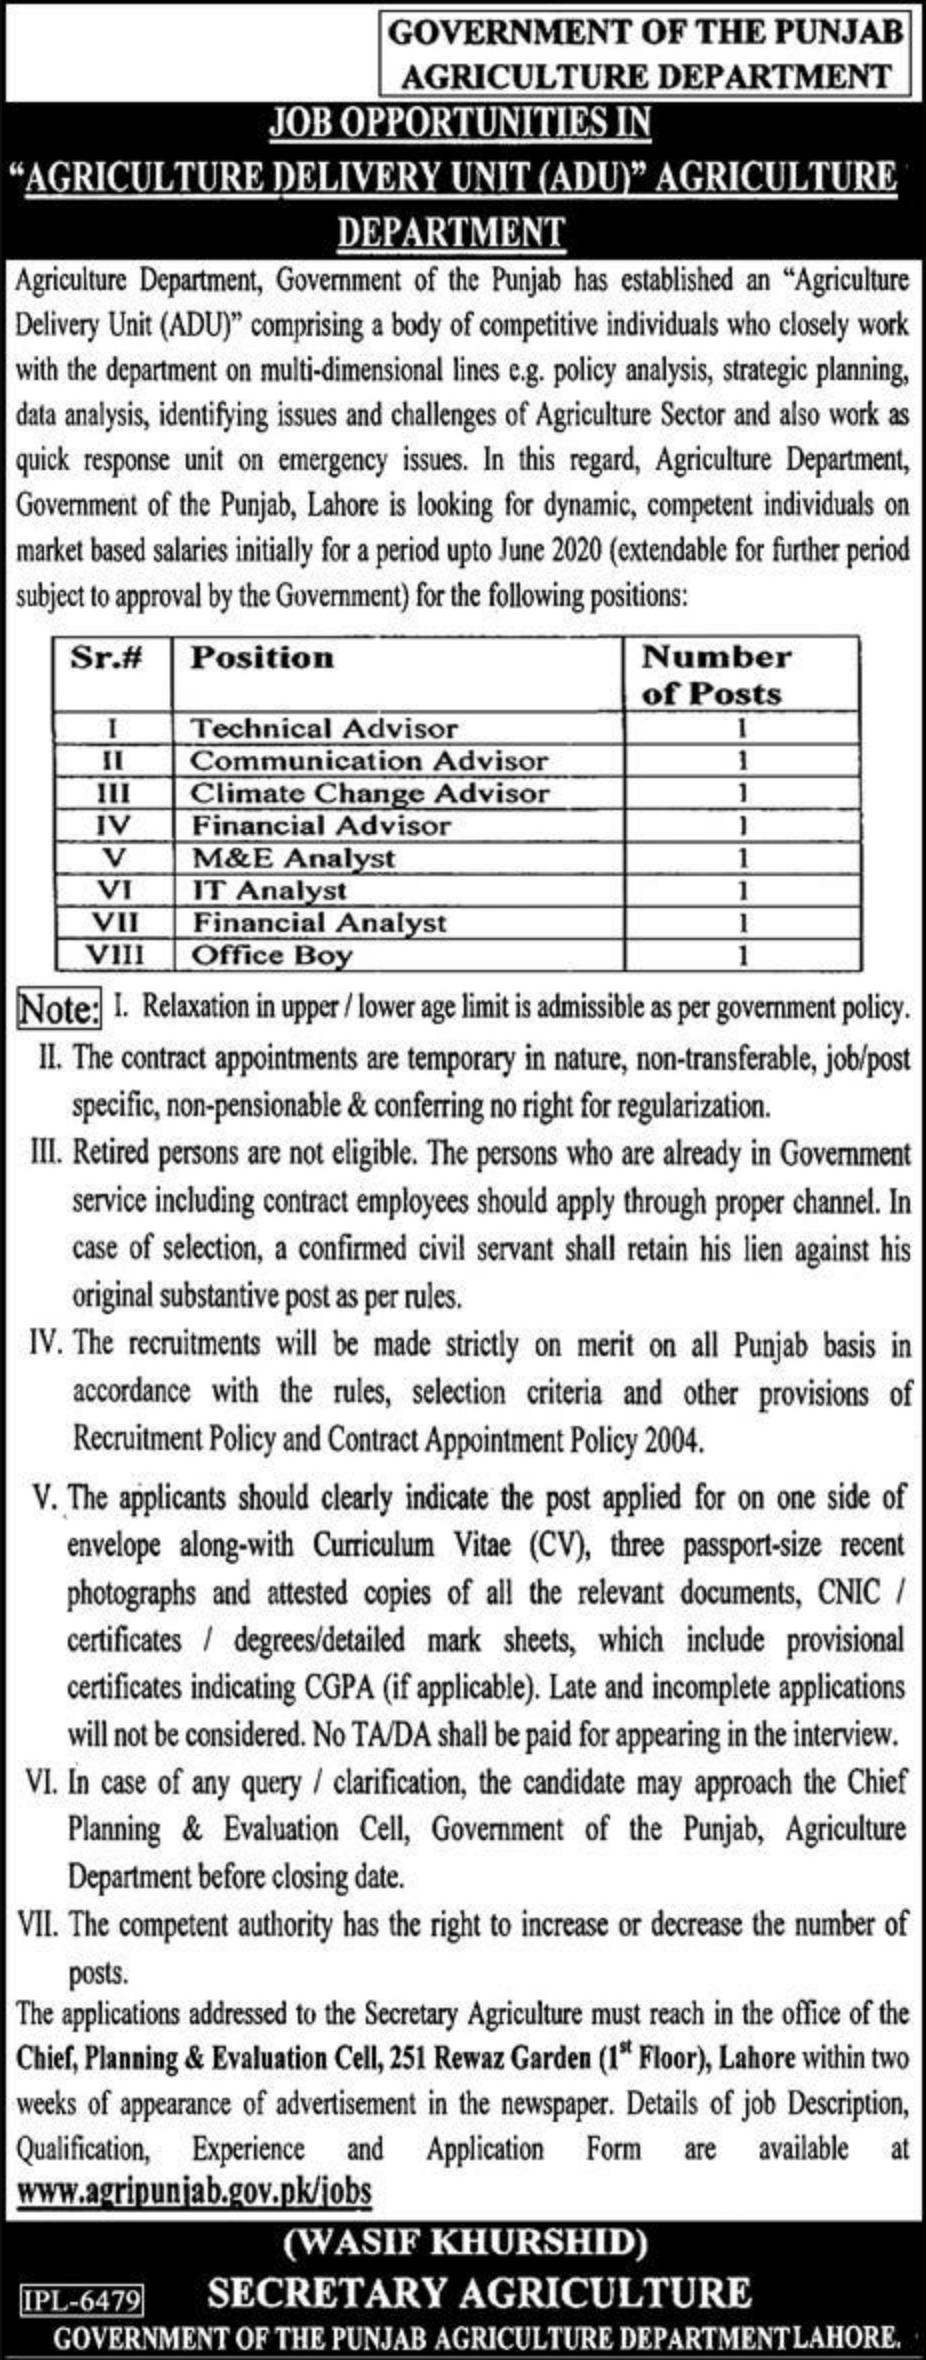 Government of the Punjab Agriculture Department Jobs 2019 Vacancies